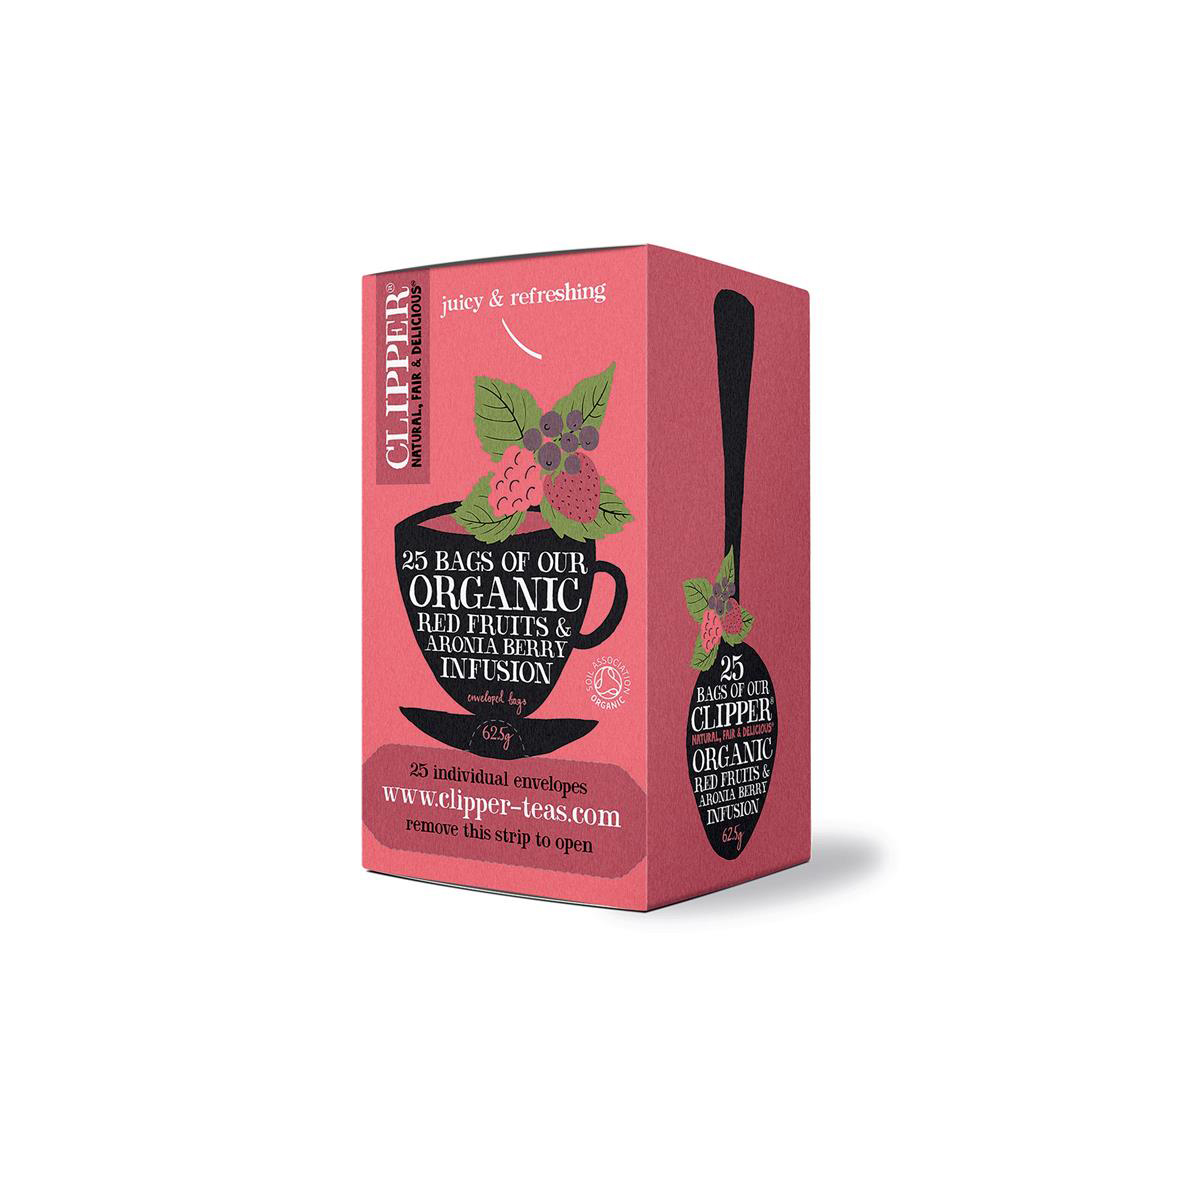 Clipper Organic Red Fruits and Aronia Tea Fairtrade Caffeine-free Teabags Ref 0403266 [Pack 25]